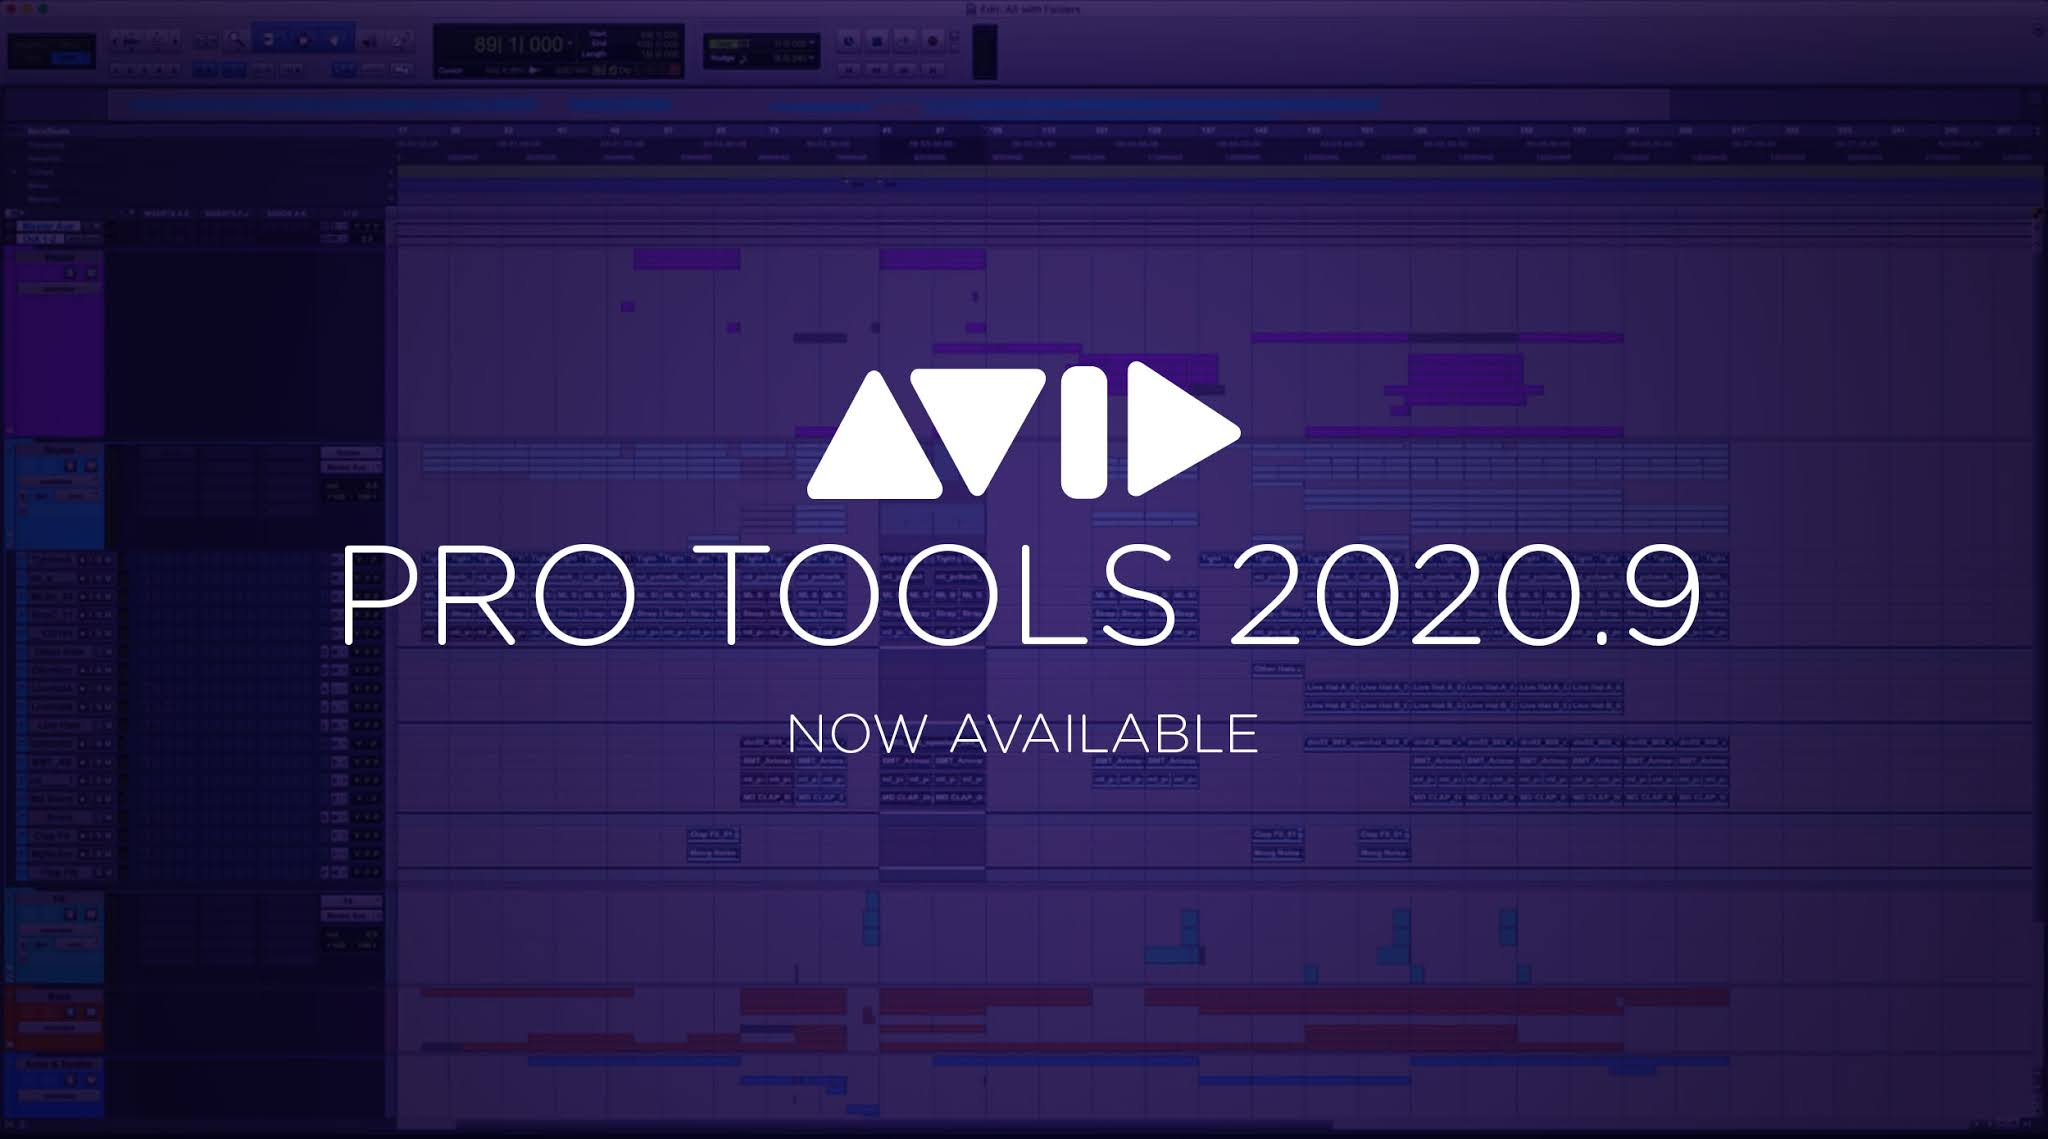 Pro Tools 2020.9 Now Available